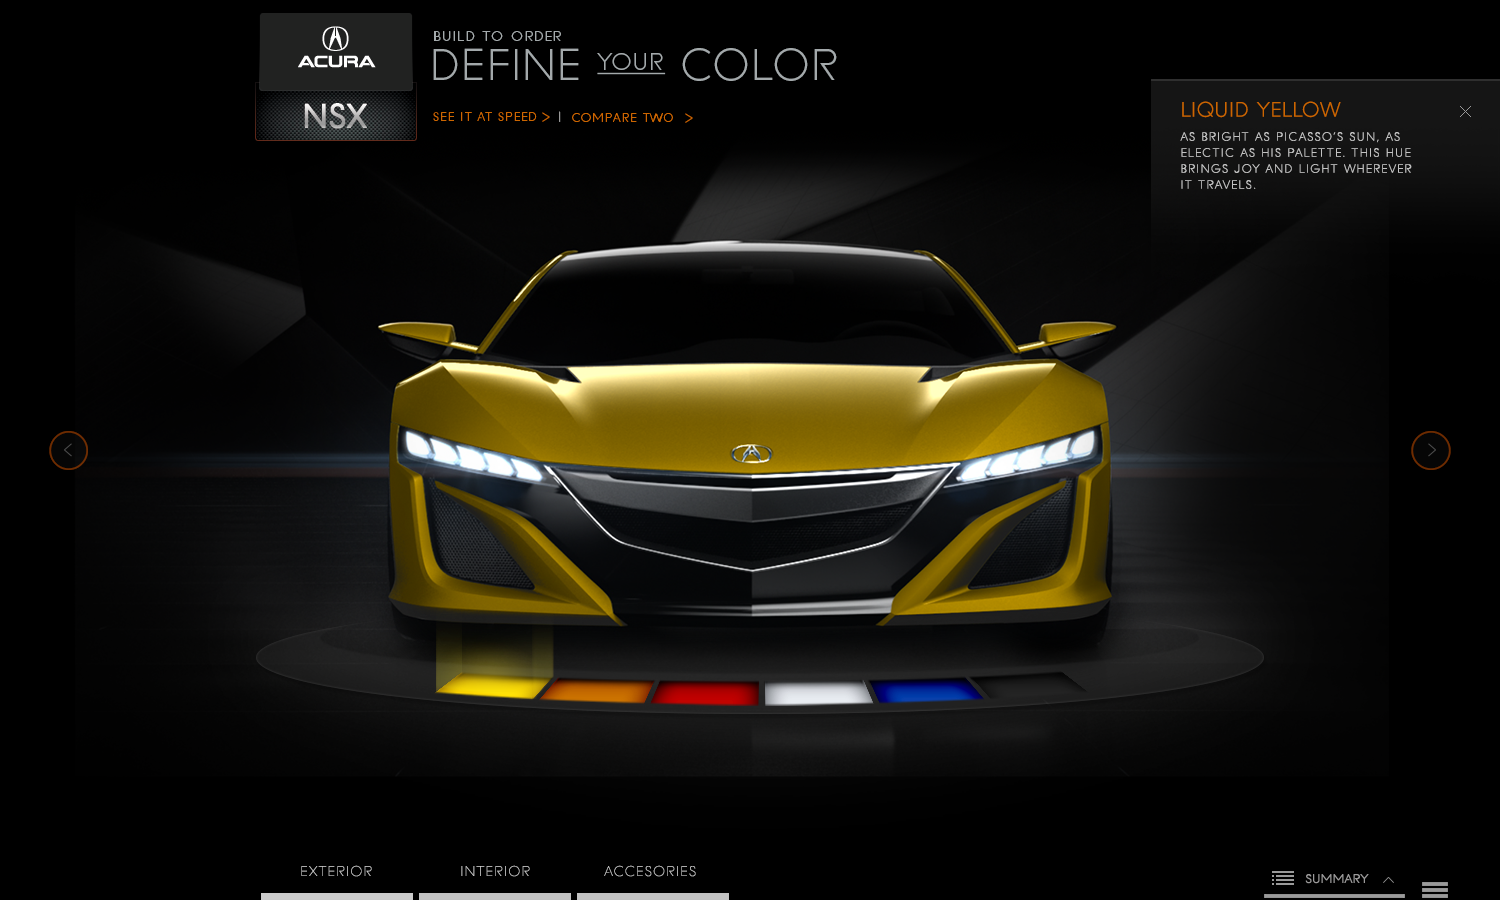 Acura_NSX_BTO_Concept_18.png